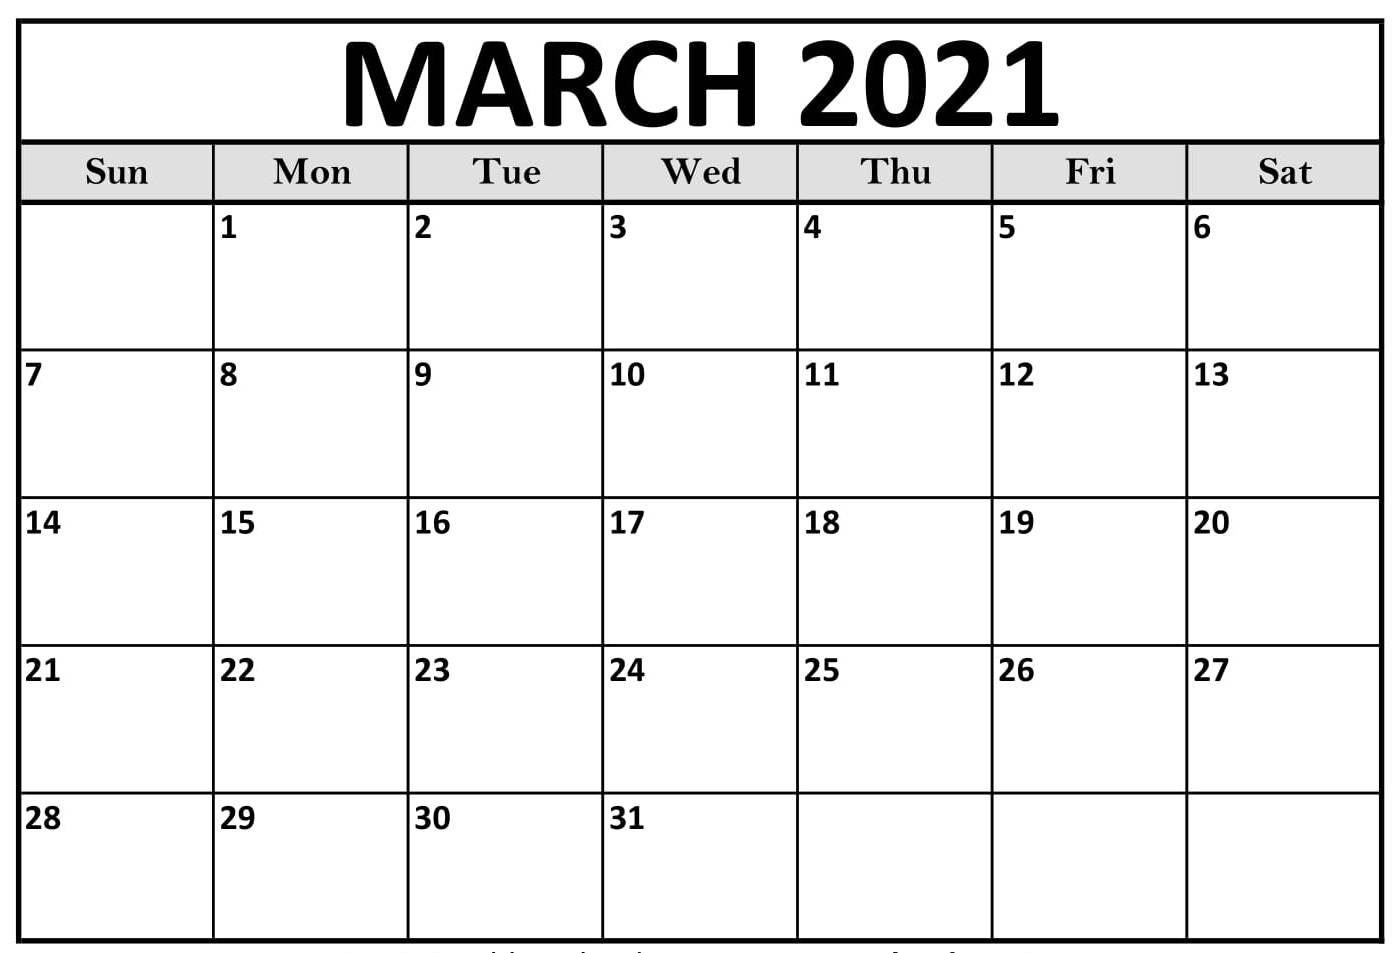 Free Printable March 2021 Calendar Page With Notes - Web